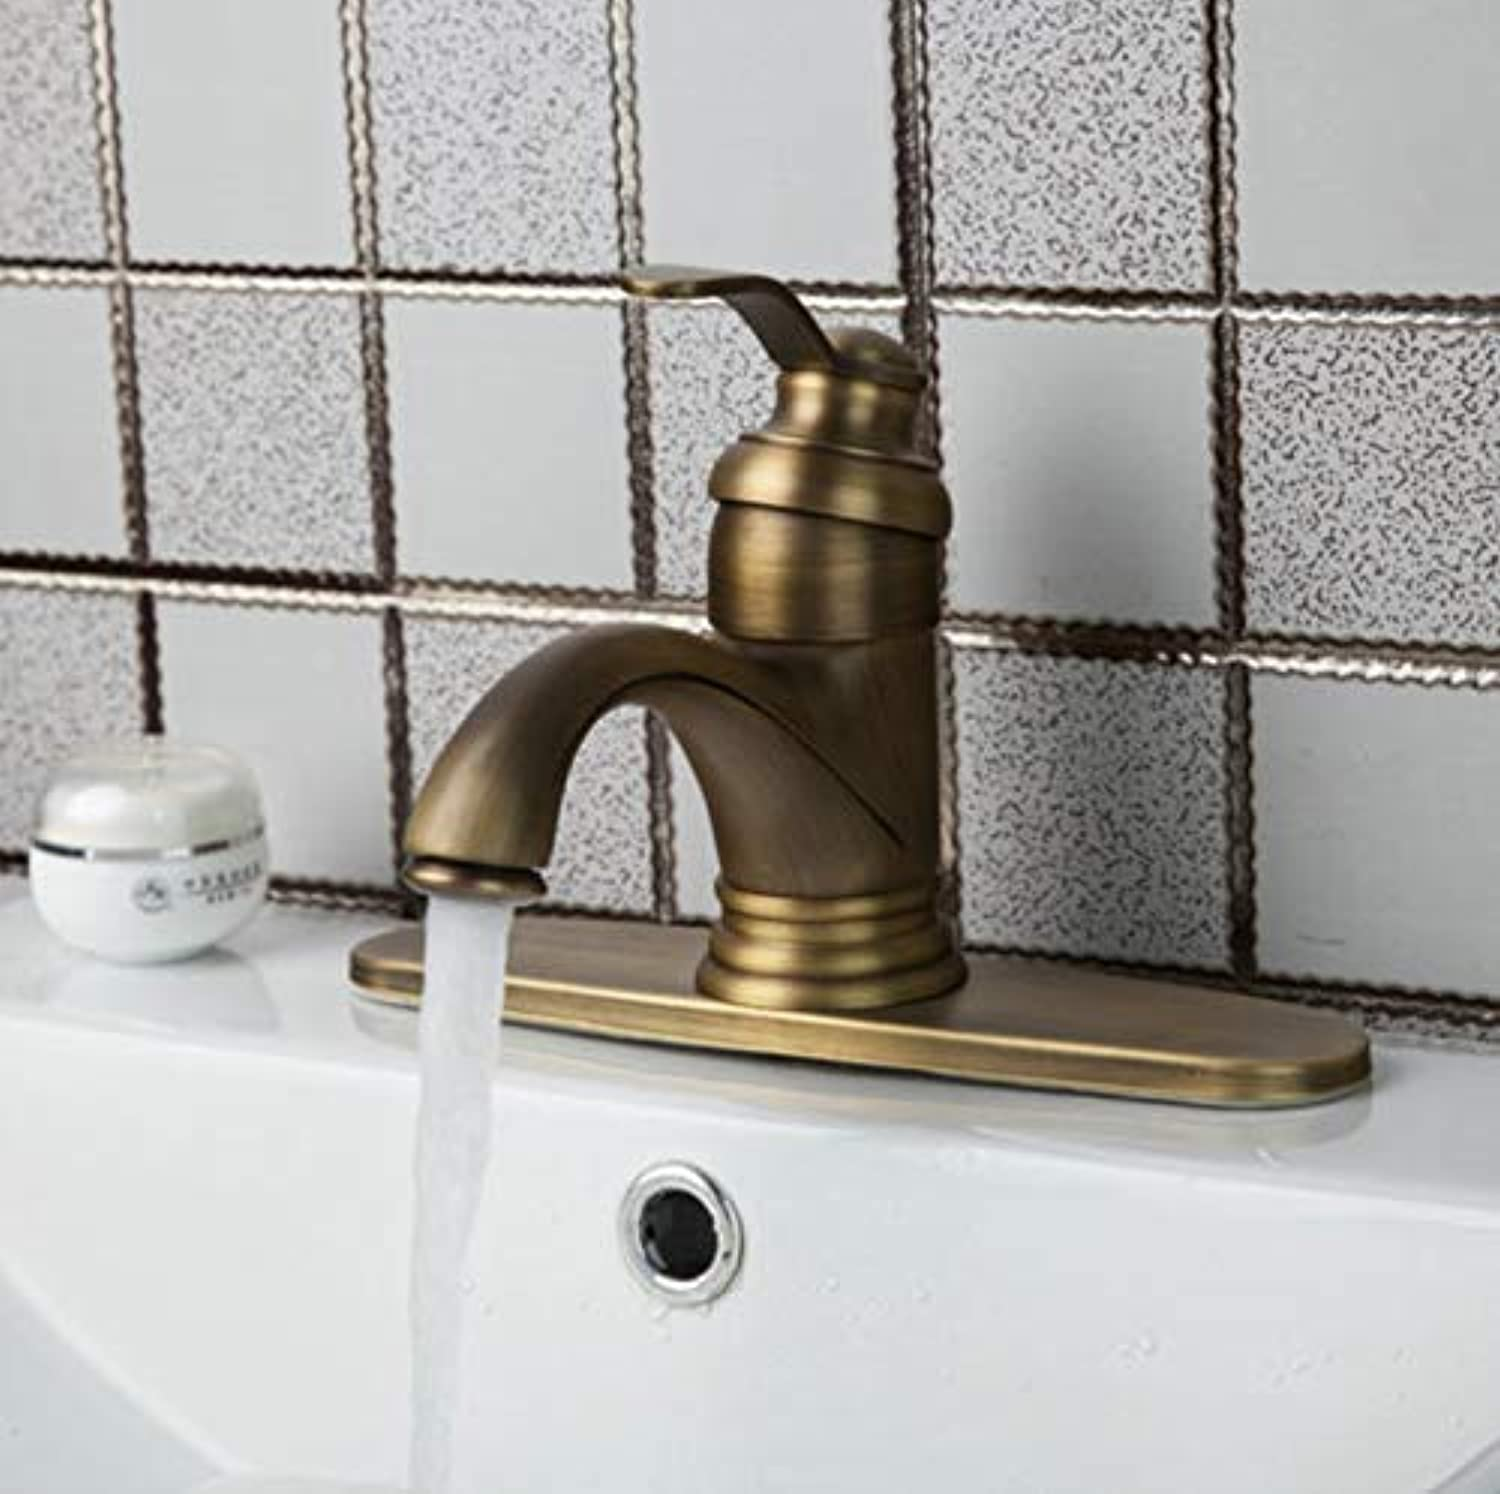 Oudan Chrome Vessel Basin Single Handle Waterfall Bathroom Antique Brass + Cover Plate 86535726 Deck Mounted Sink Faucets,Mixer Tap (color   -, Size   -)